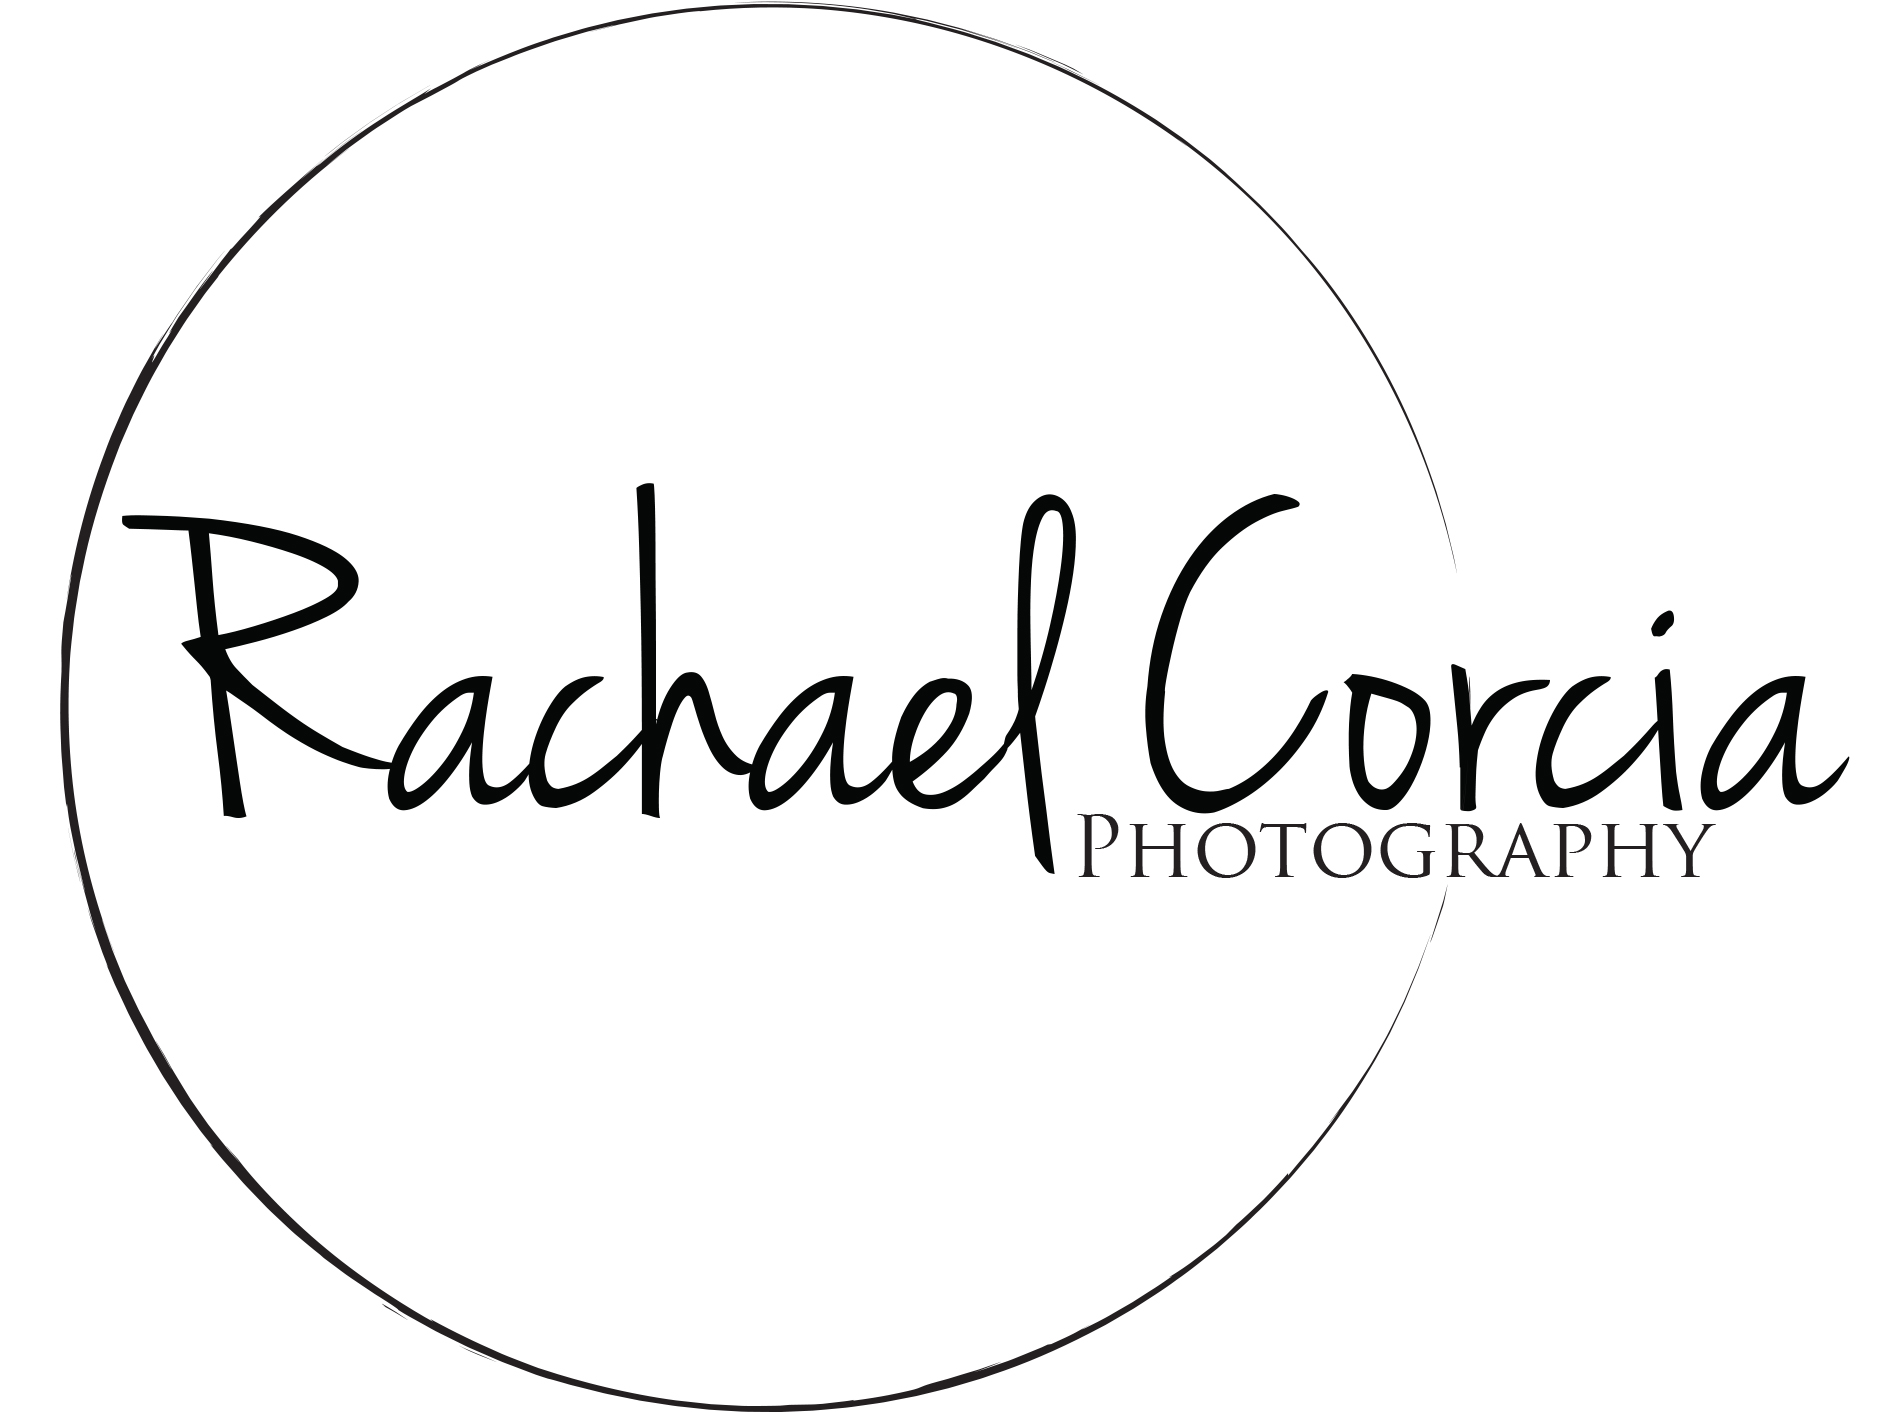 Rachael Corcia Photography